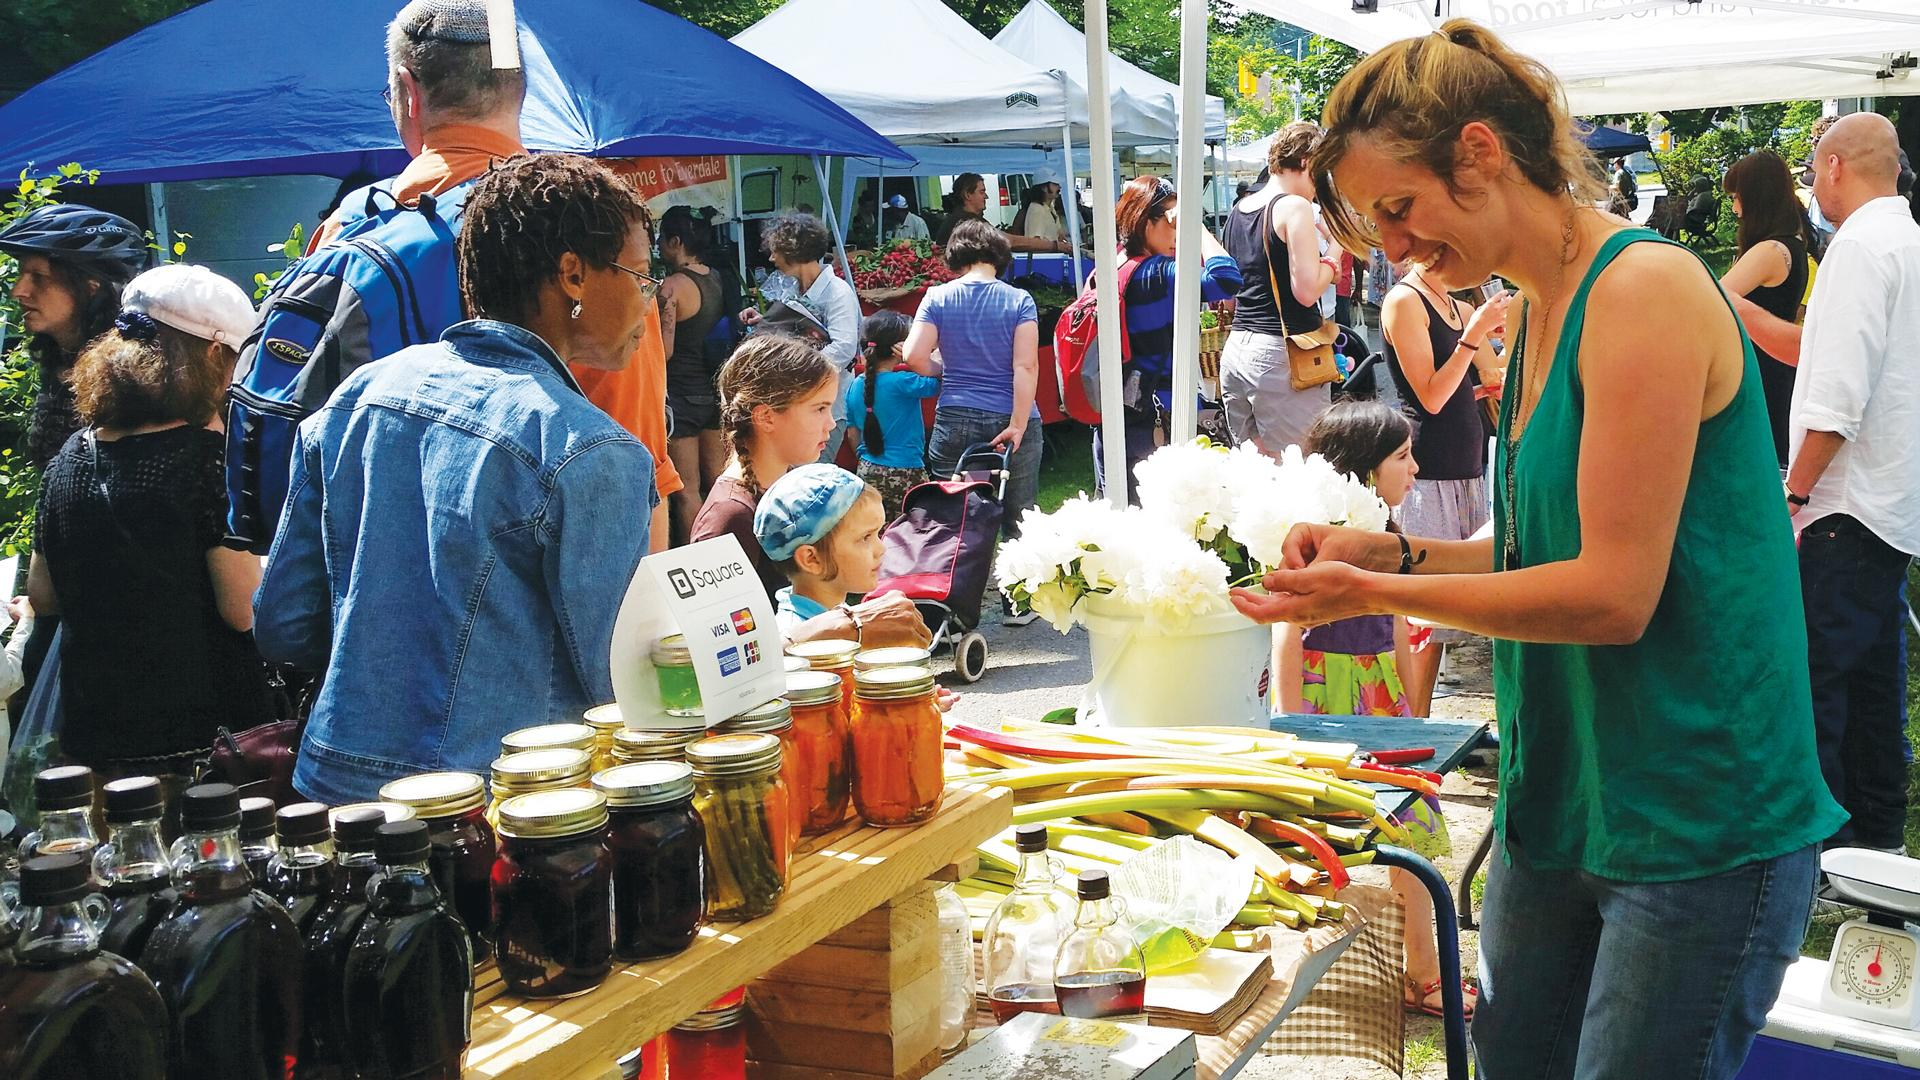 The freshest farmers' markets in Toronto | People shop at the Dufferin Grove Farmers' Market